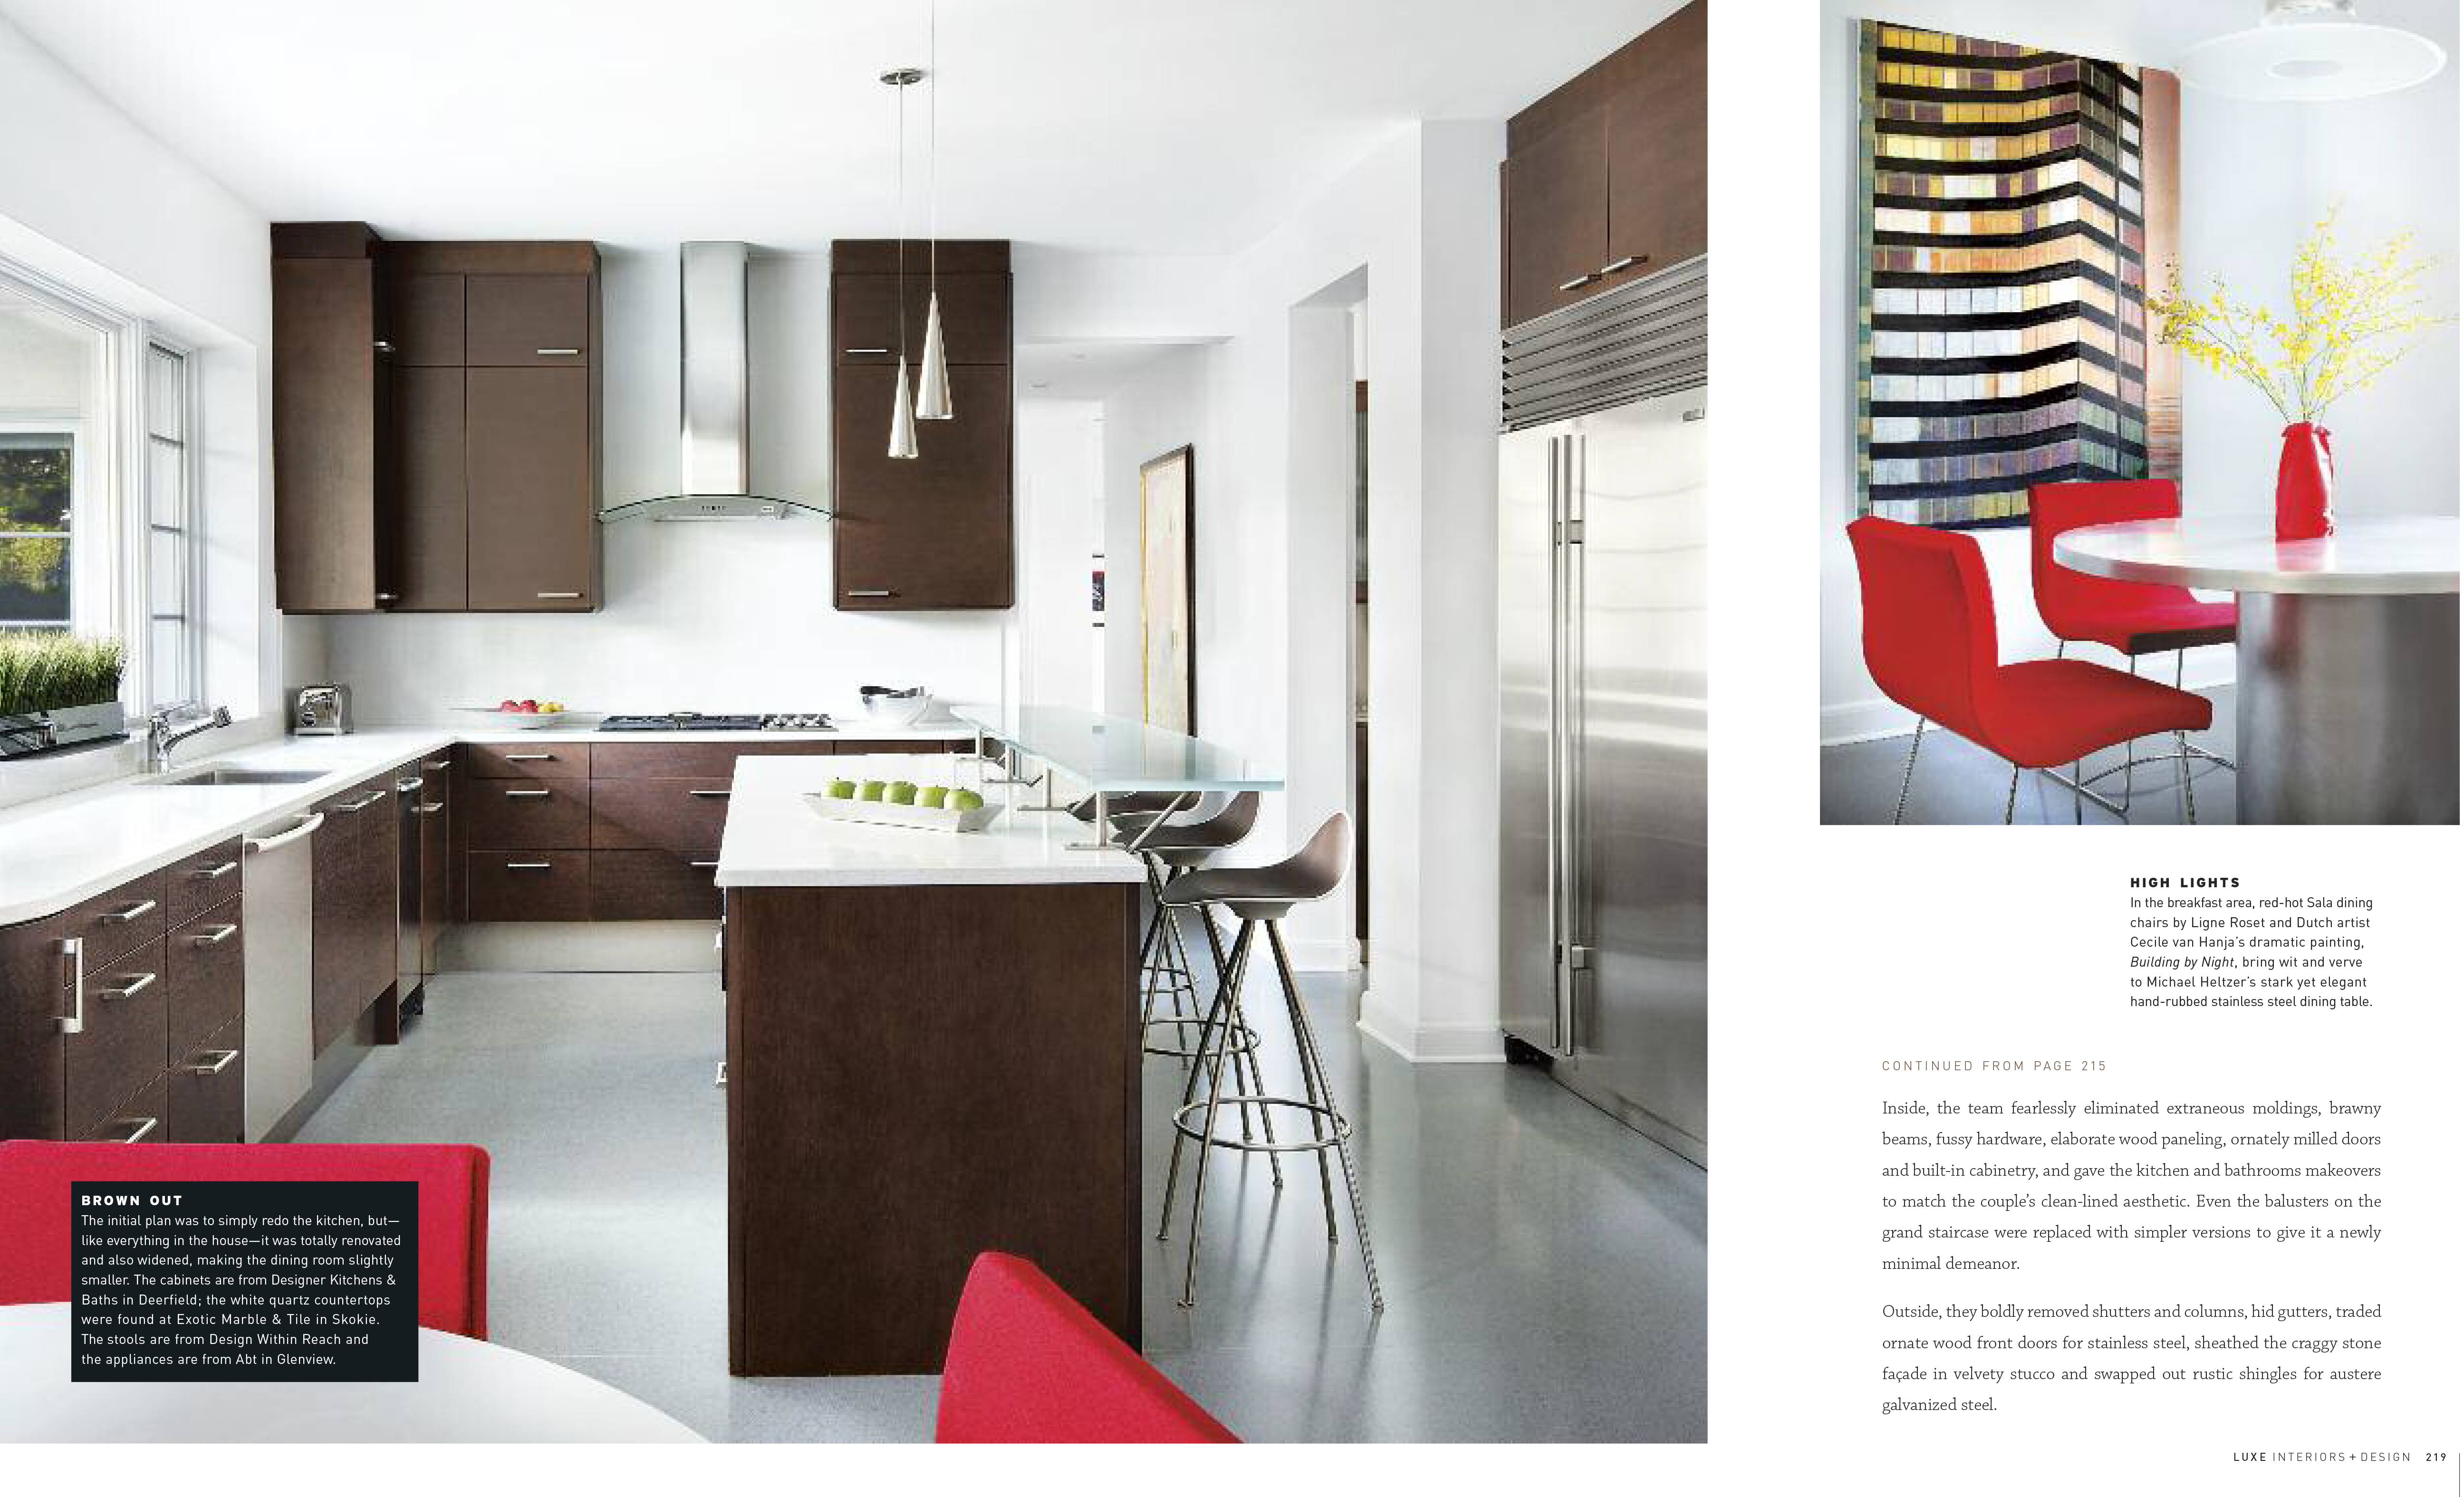 2011 luxe interiors design magazine chicago the couple was after